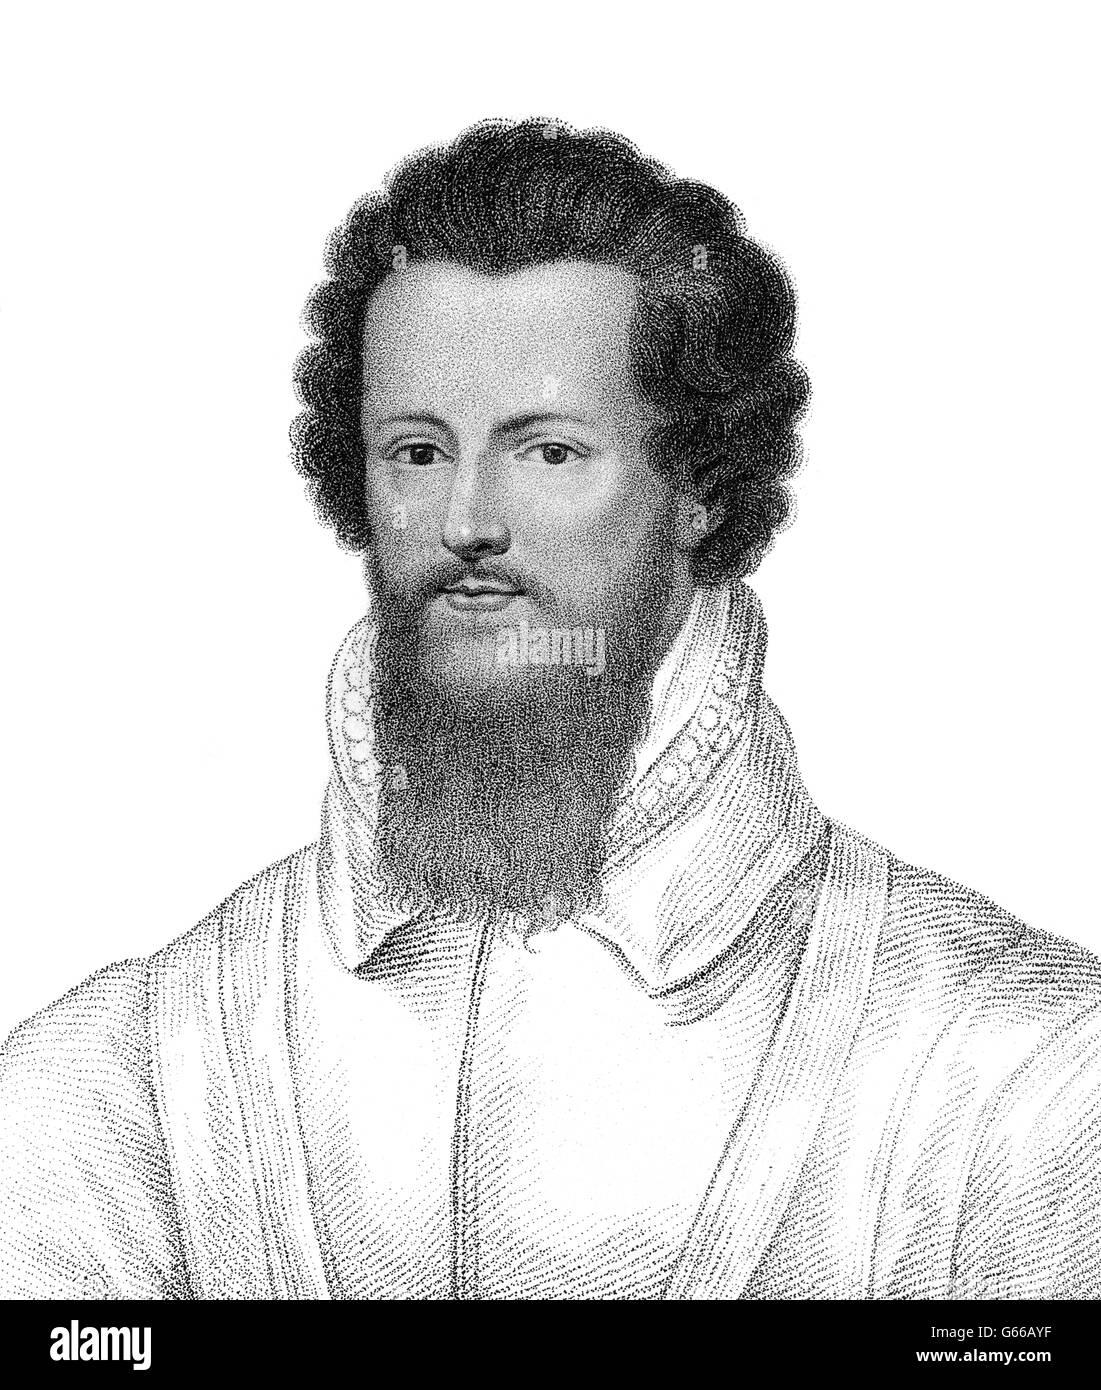 Robert Devereux, 3rd Earl of Essex, 1591-1646, an English Parliamentarian and soldier - Stock Image